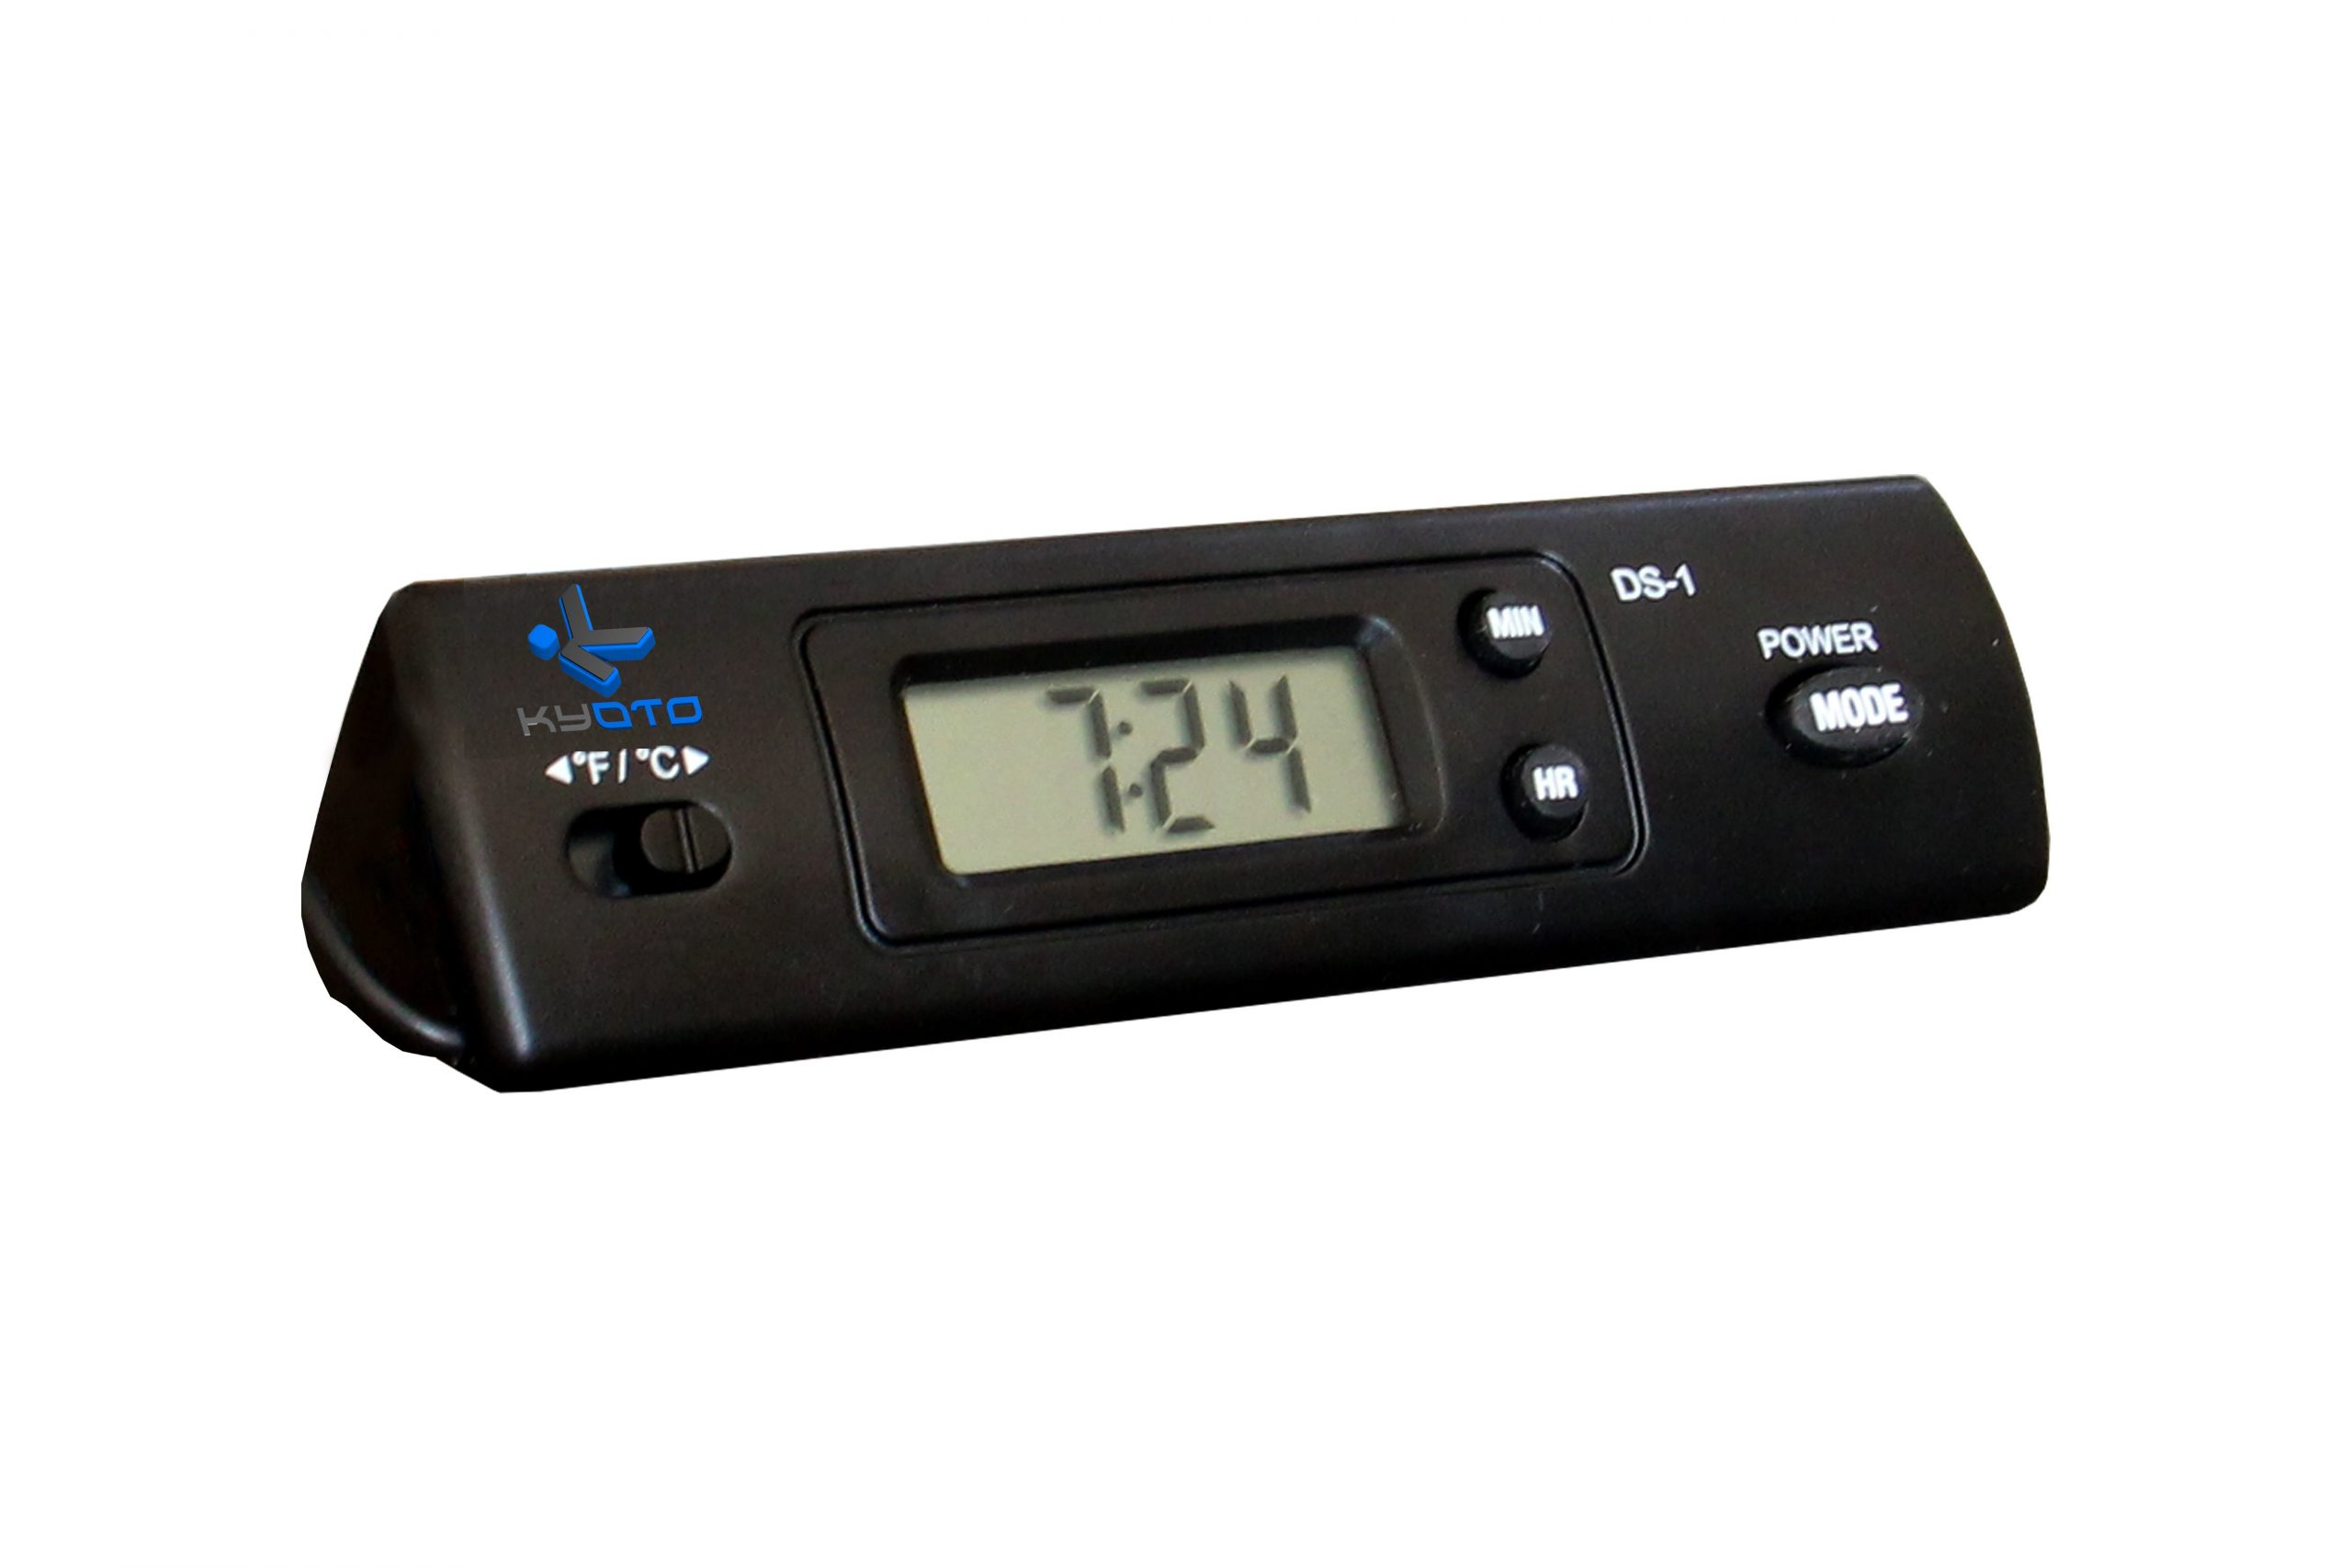 Thermometer digital kyoto kt-01 (1).jpg